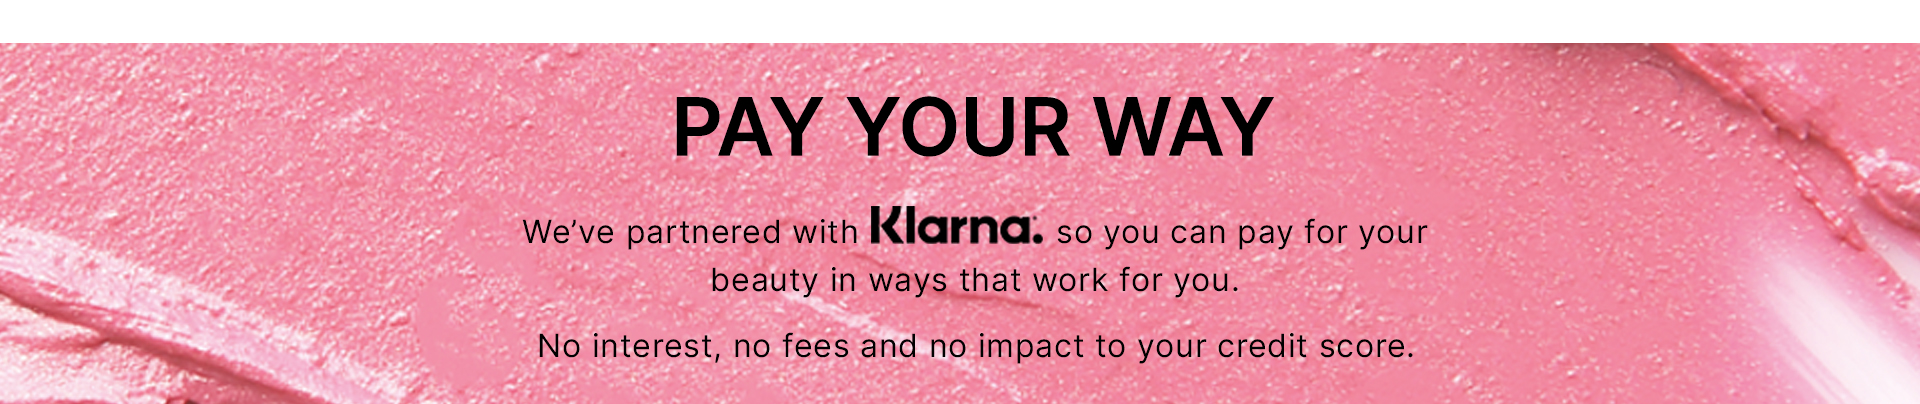 pay your way. We've partnered with Klarna. so you can pay for your beauty in ways that work for you. No interest, no fees and no impact to your credit score.